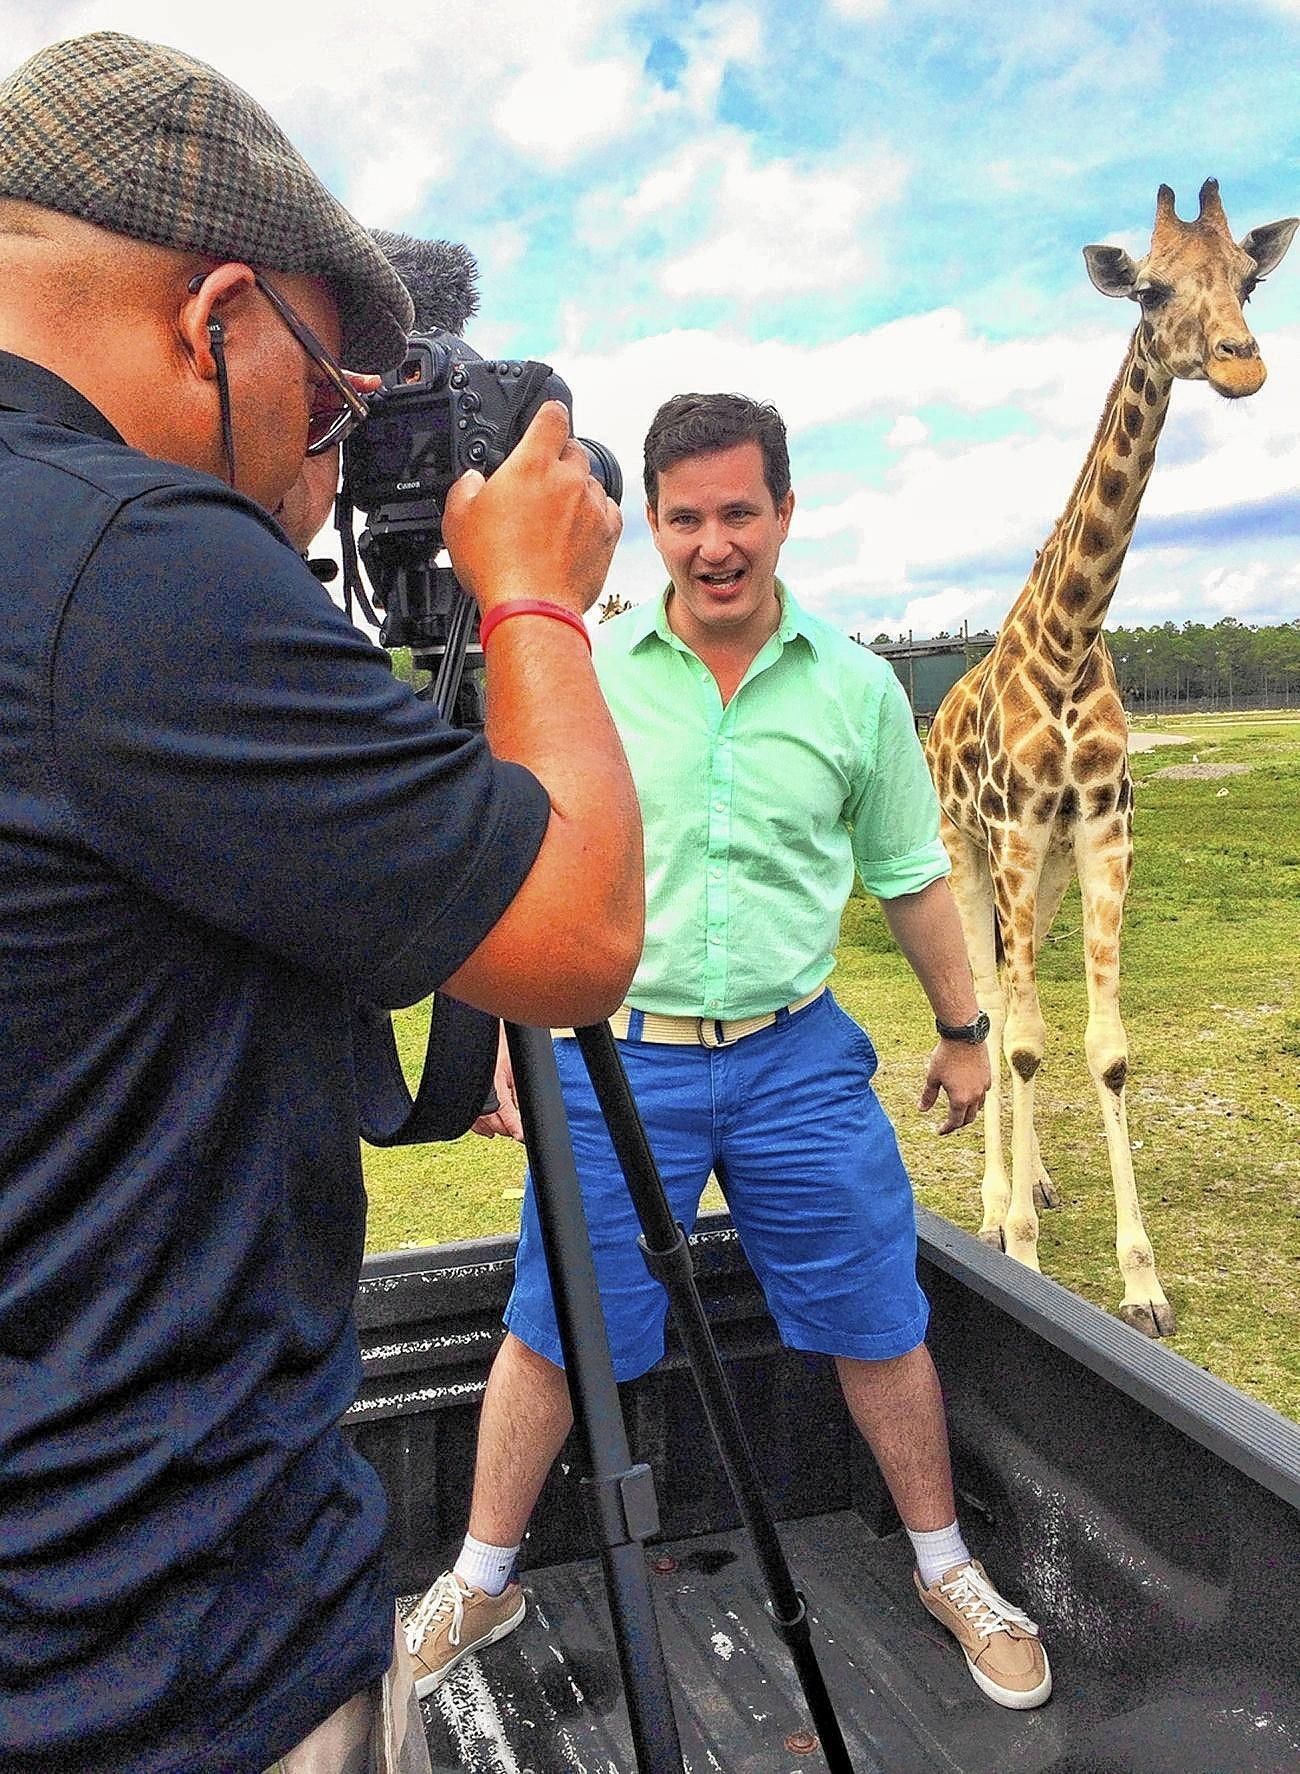 Brazilian host Renan Leahy, (right) gets up close to a giraffe at Lion Country Safari in Loxahatchee during filming for a new Palm Beach County travel video on Thursday, Feb. 27 with Brand USA videographer Amon Focus.